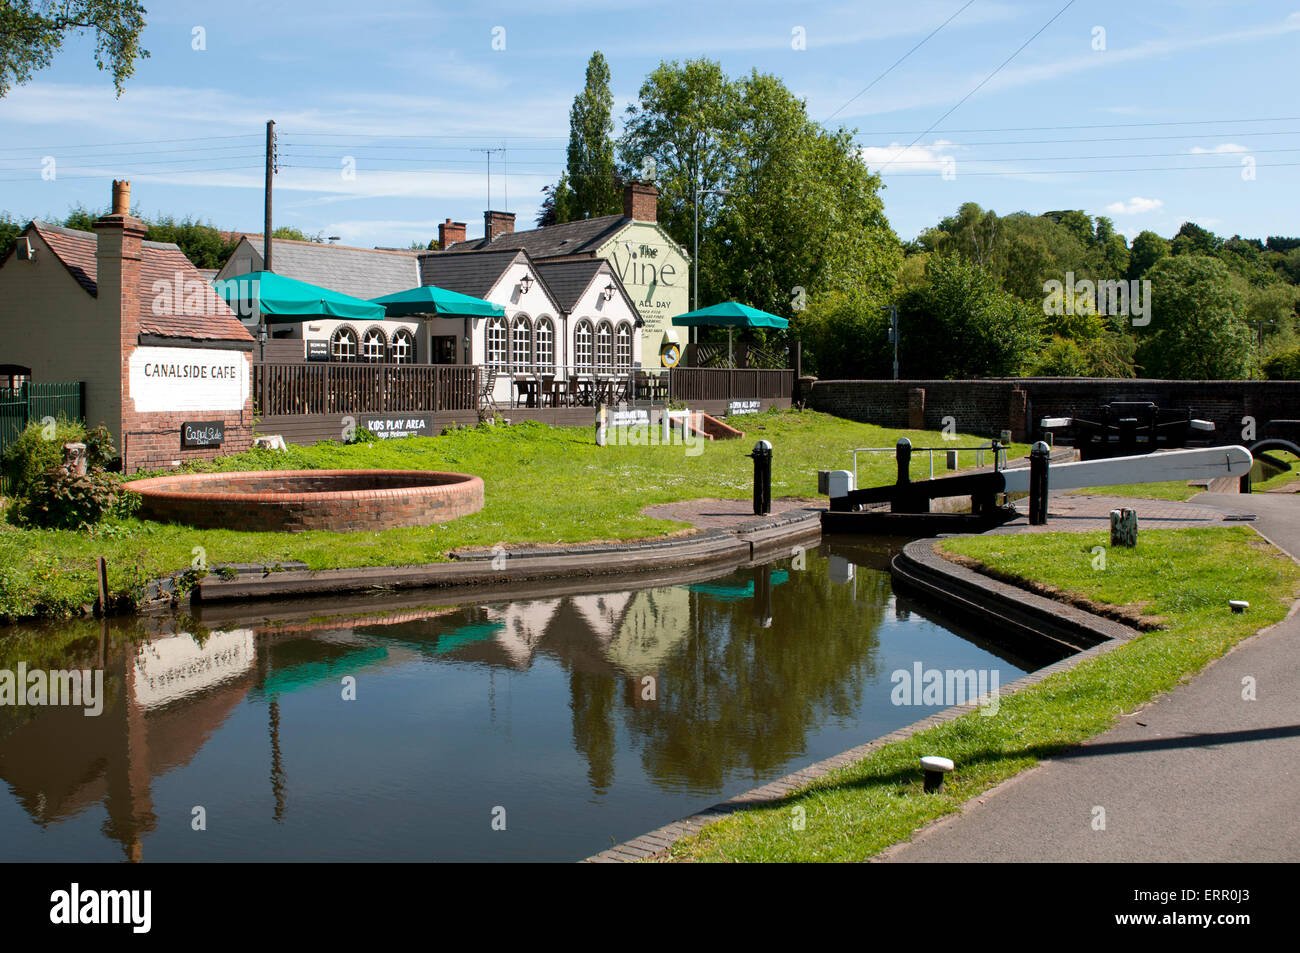 The Staffordshire and Worcestershire Canal and The Vine pub, Kinver, Staffordshire, England, UK - Stock Image